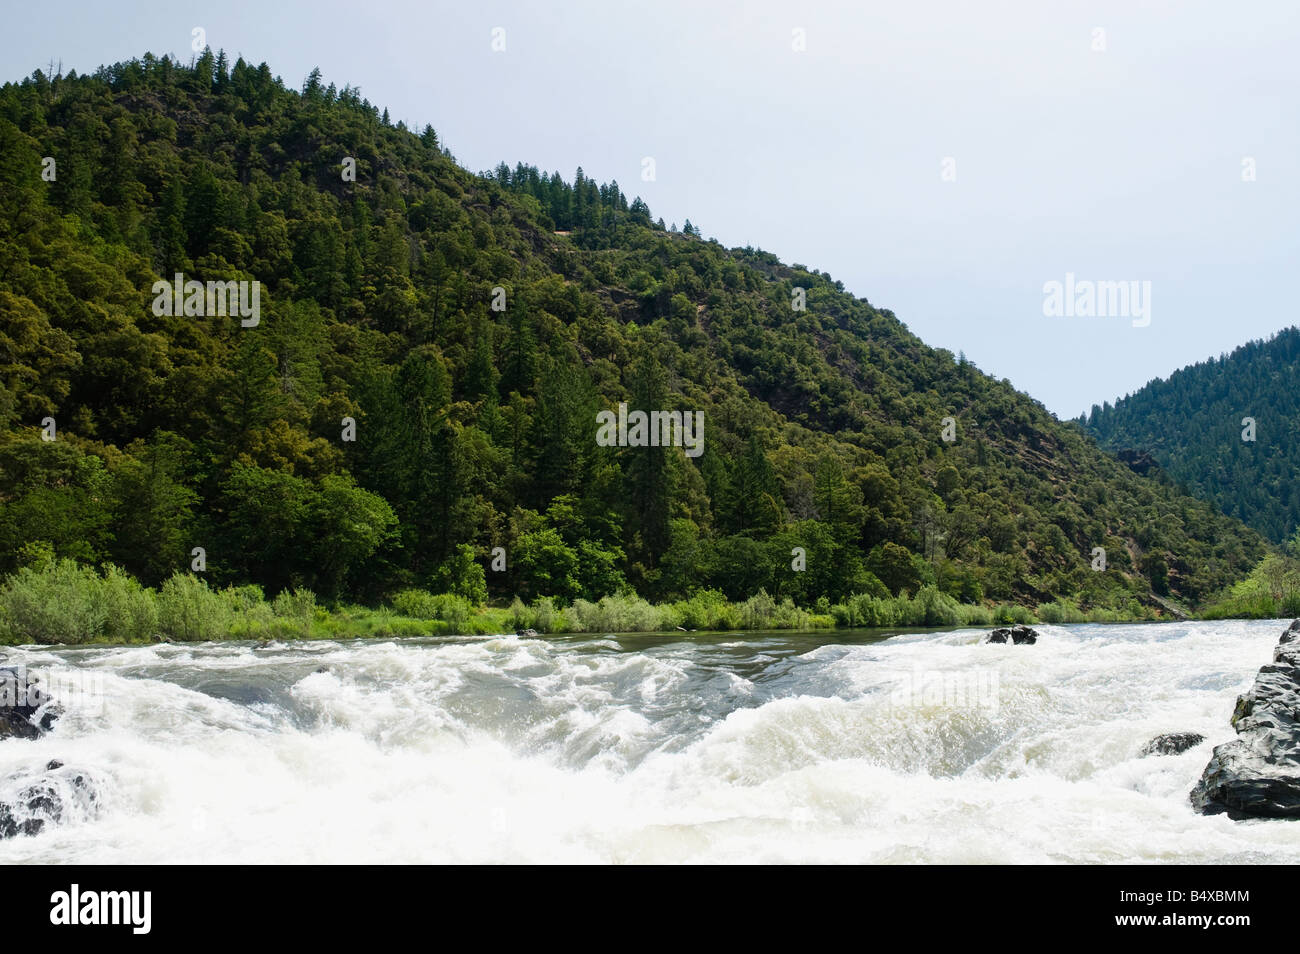 Whitewater raft approaching waterfall - Stock Image